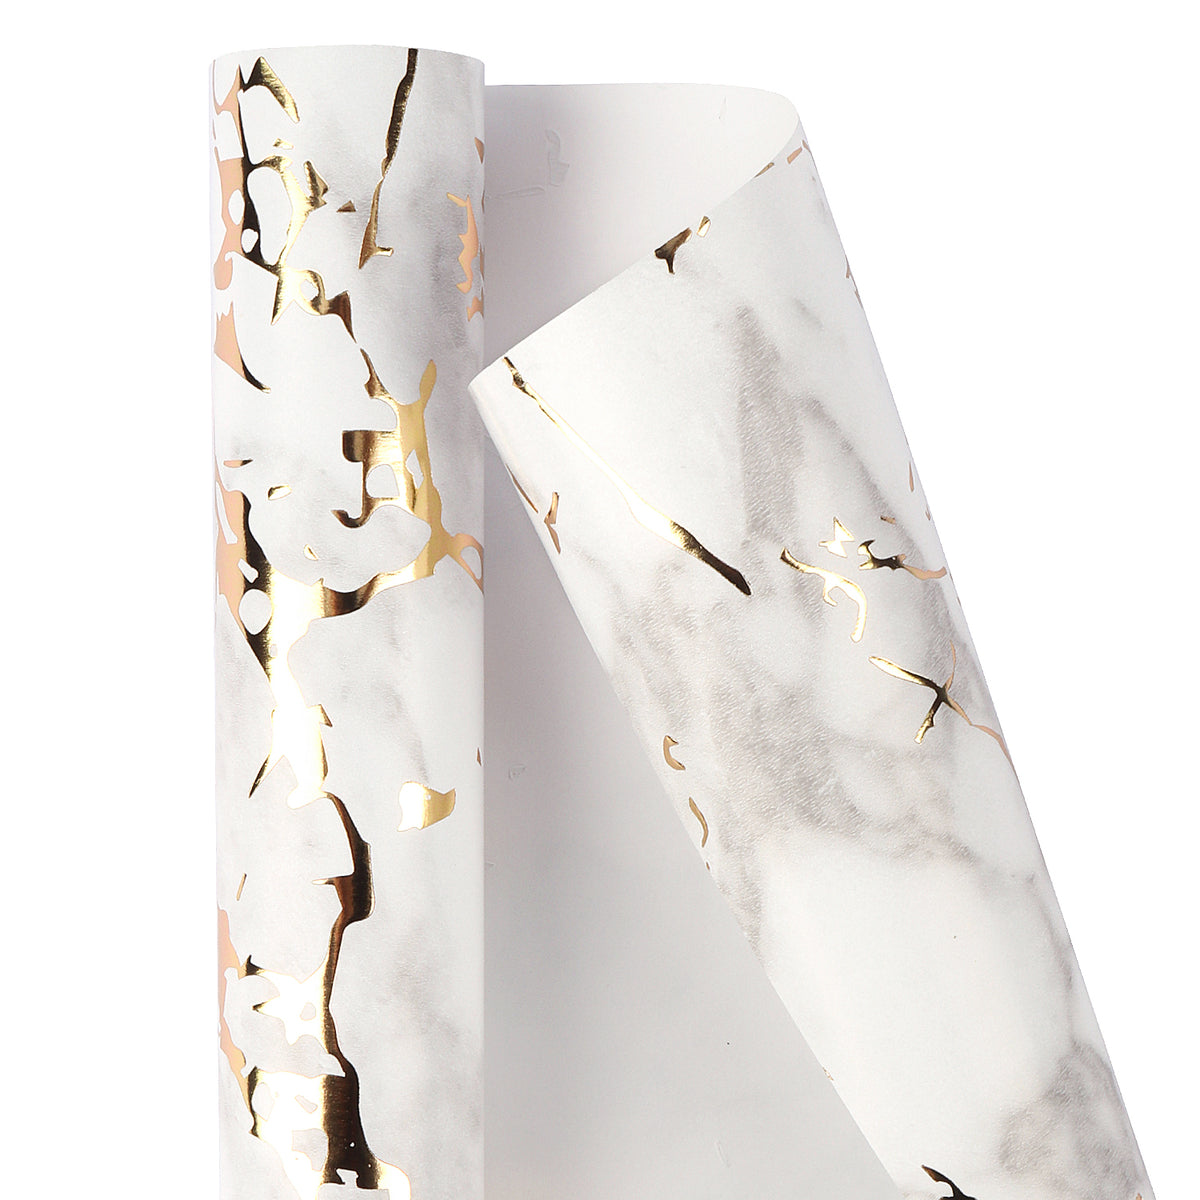 Wrapaholic -3-Different-Marble-Design-Wrapping-Paper-Roll-(14.4 sq. ft.TTL.)-4